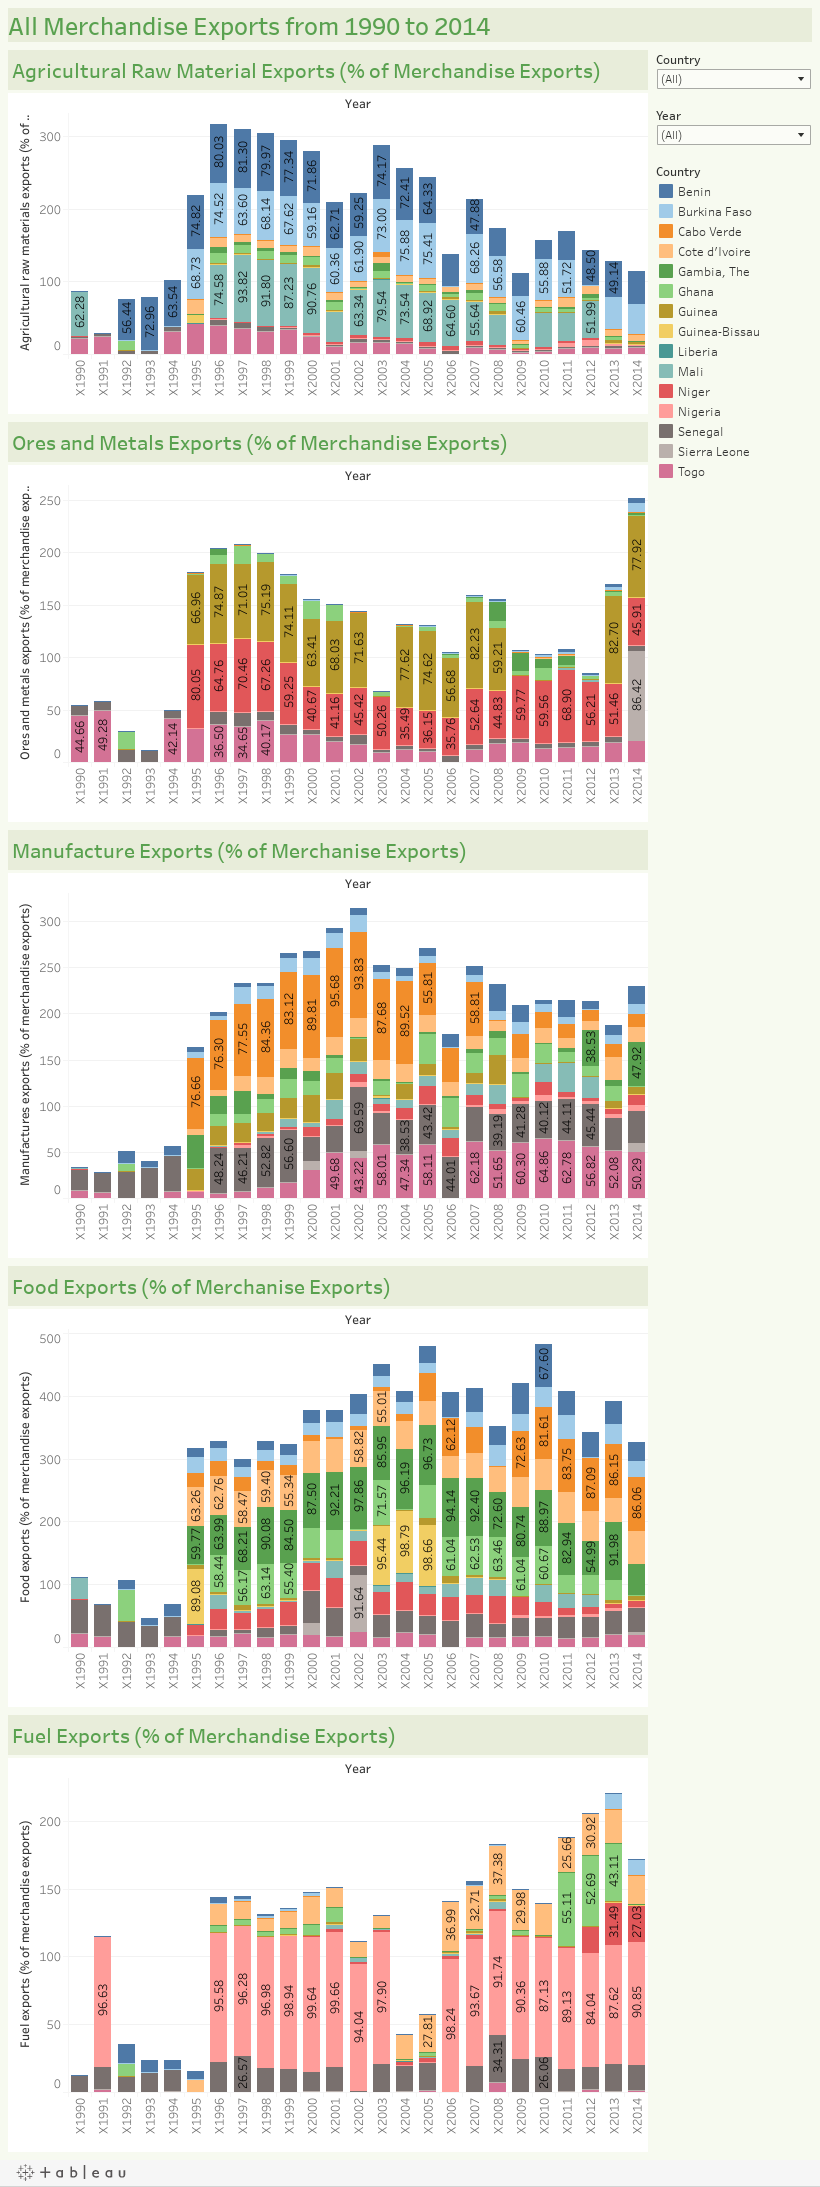 All Merchandise Exports from 1990 to 2014